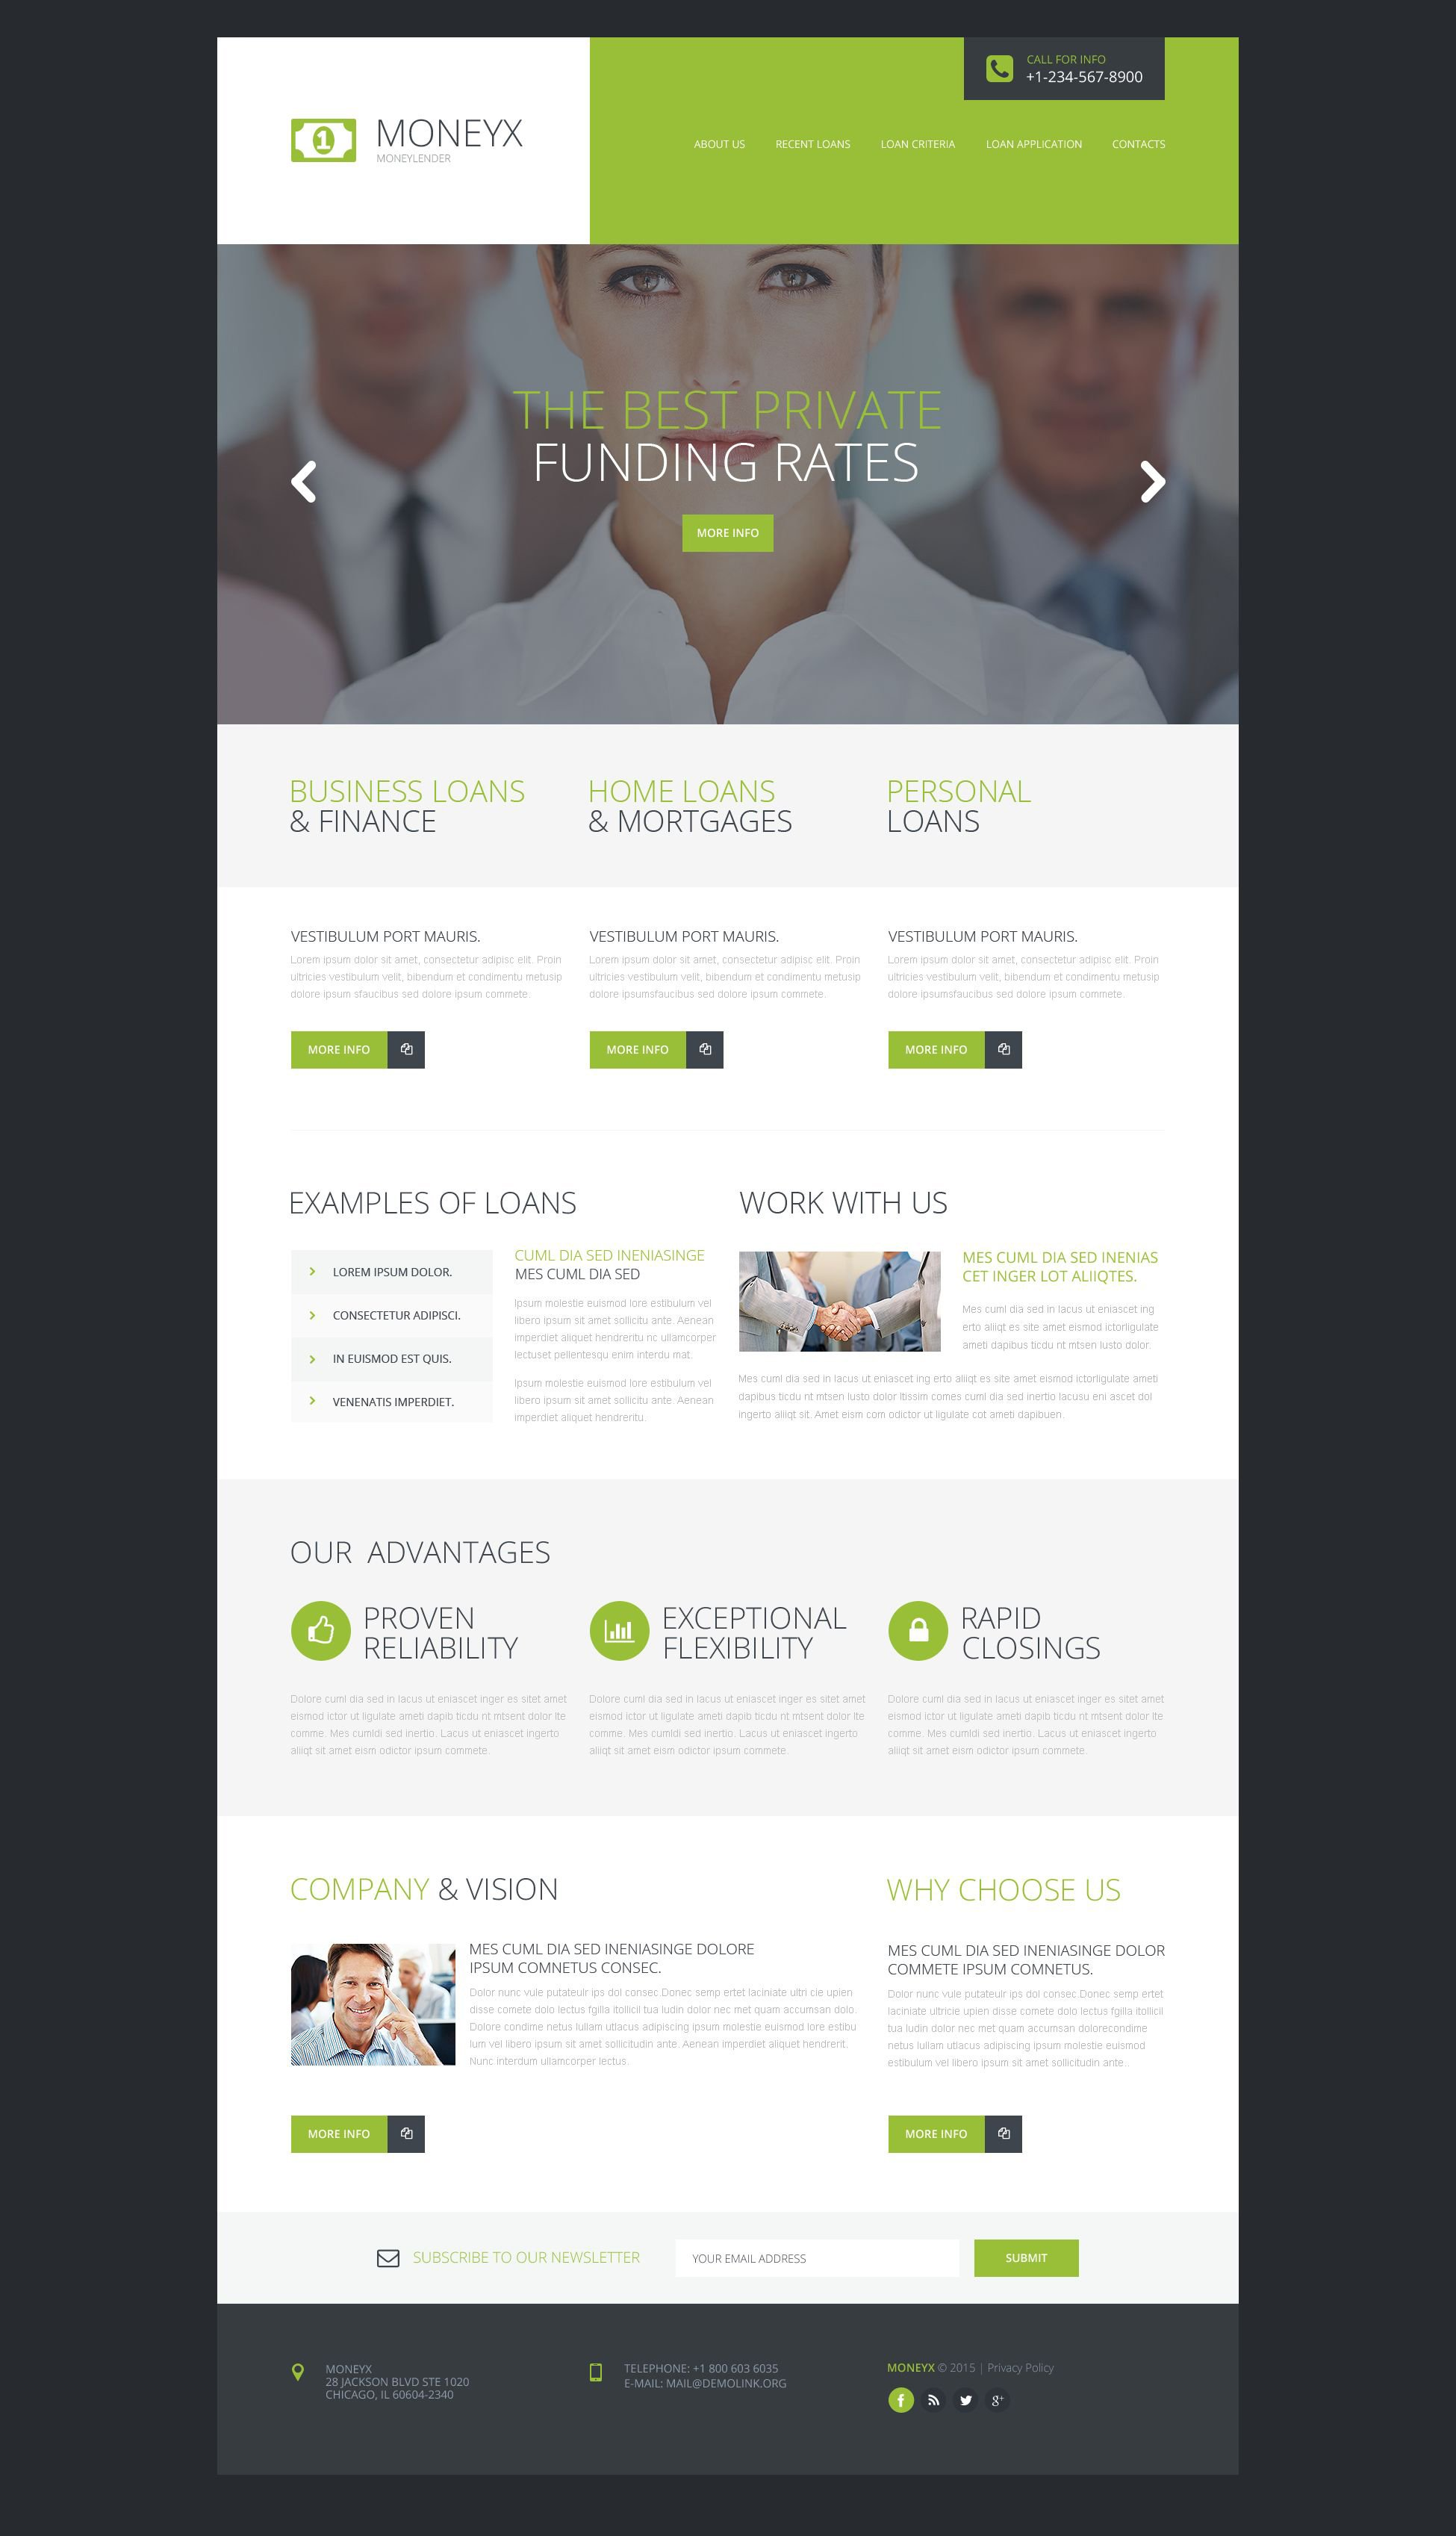 The Moneyx Moneylender Business Bootstrap Design 53177, one of the best website templates of its kind (business, most popular), also known as moneyx Moneylender business website template, success company website template, enterprise solution website template, business website template, industry website template, technical website template, clients website template, customer support website template, automate website template, flow website template, services website template, plug-in website template, flex website template, profile website template, principles website template, web products website template, technology system and related with moneyx Moneylender business, success company, enterprise solution, business, industry, technical, clients, customer support, automate, flow, services, plug-in, flex, profile, principles, web products, technology system, etc.